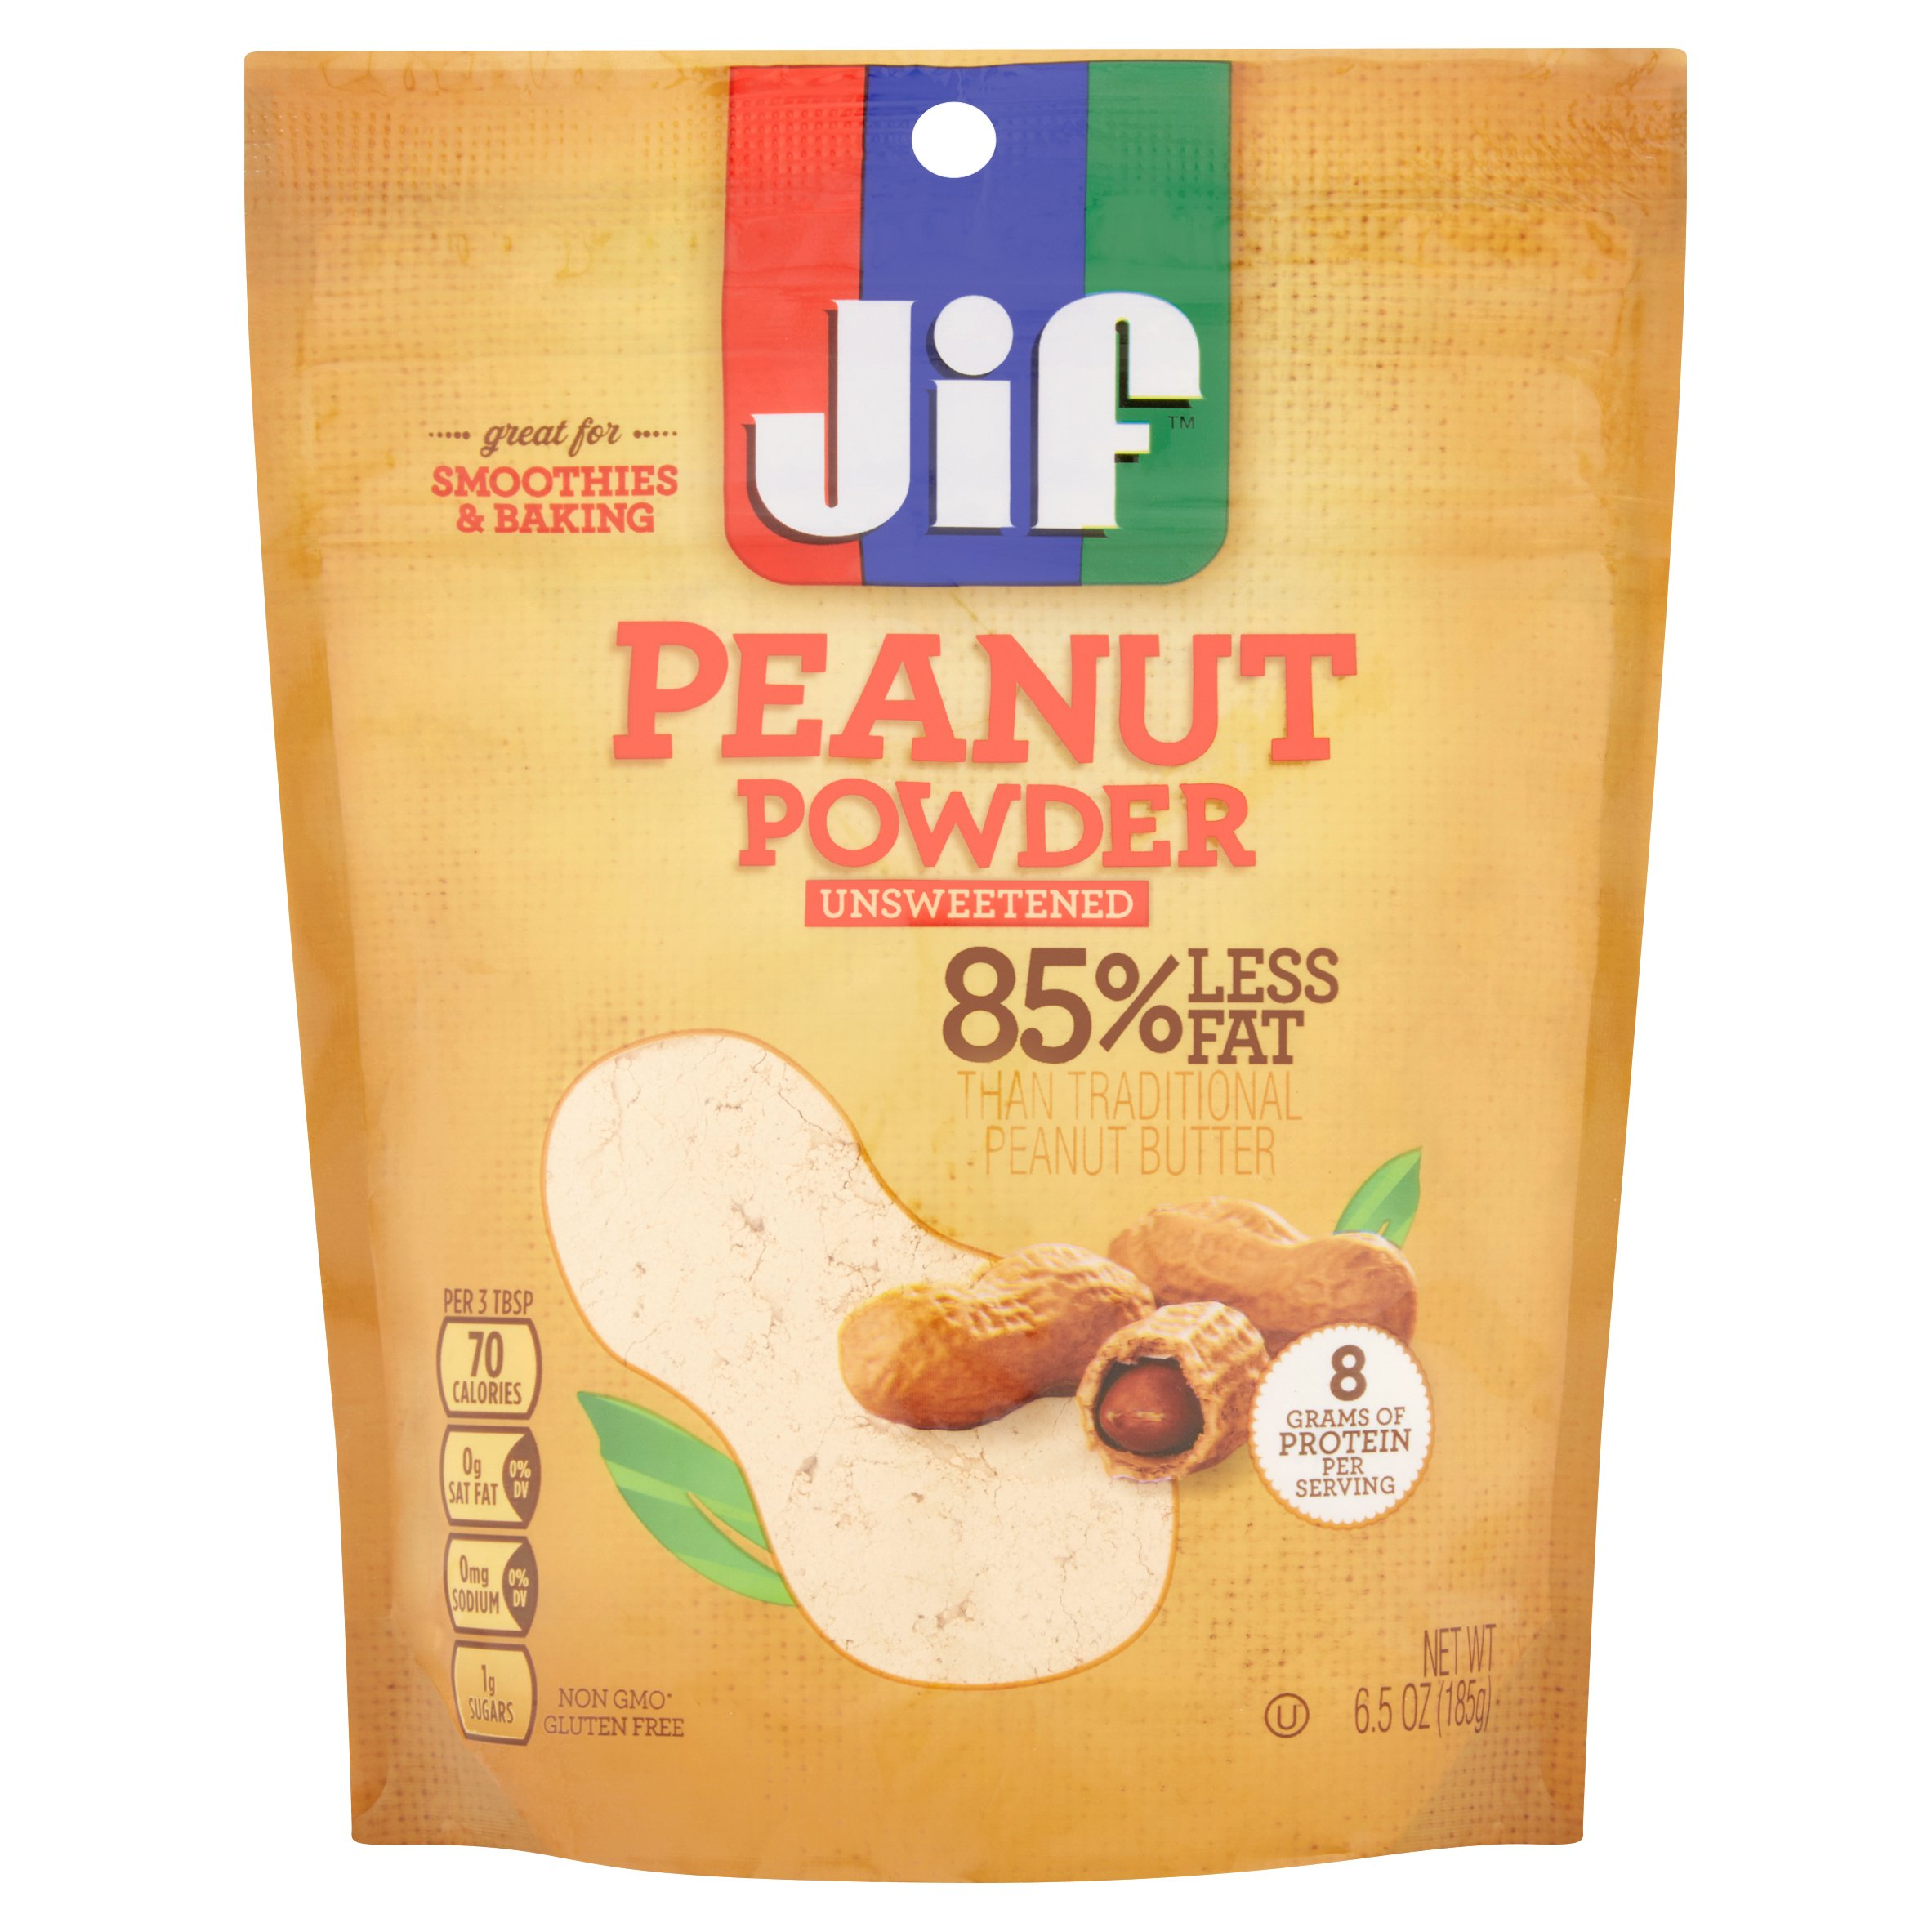 Jif Unsweetened Peanut Powder, 6.5 oz